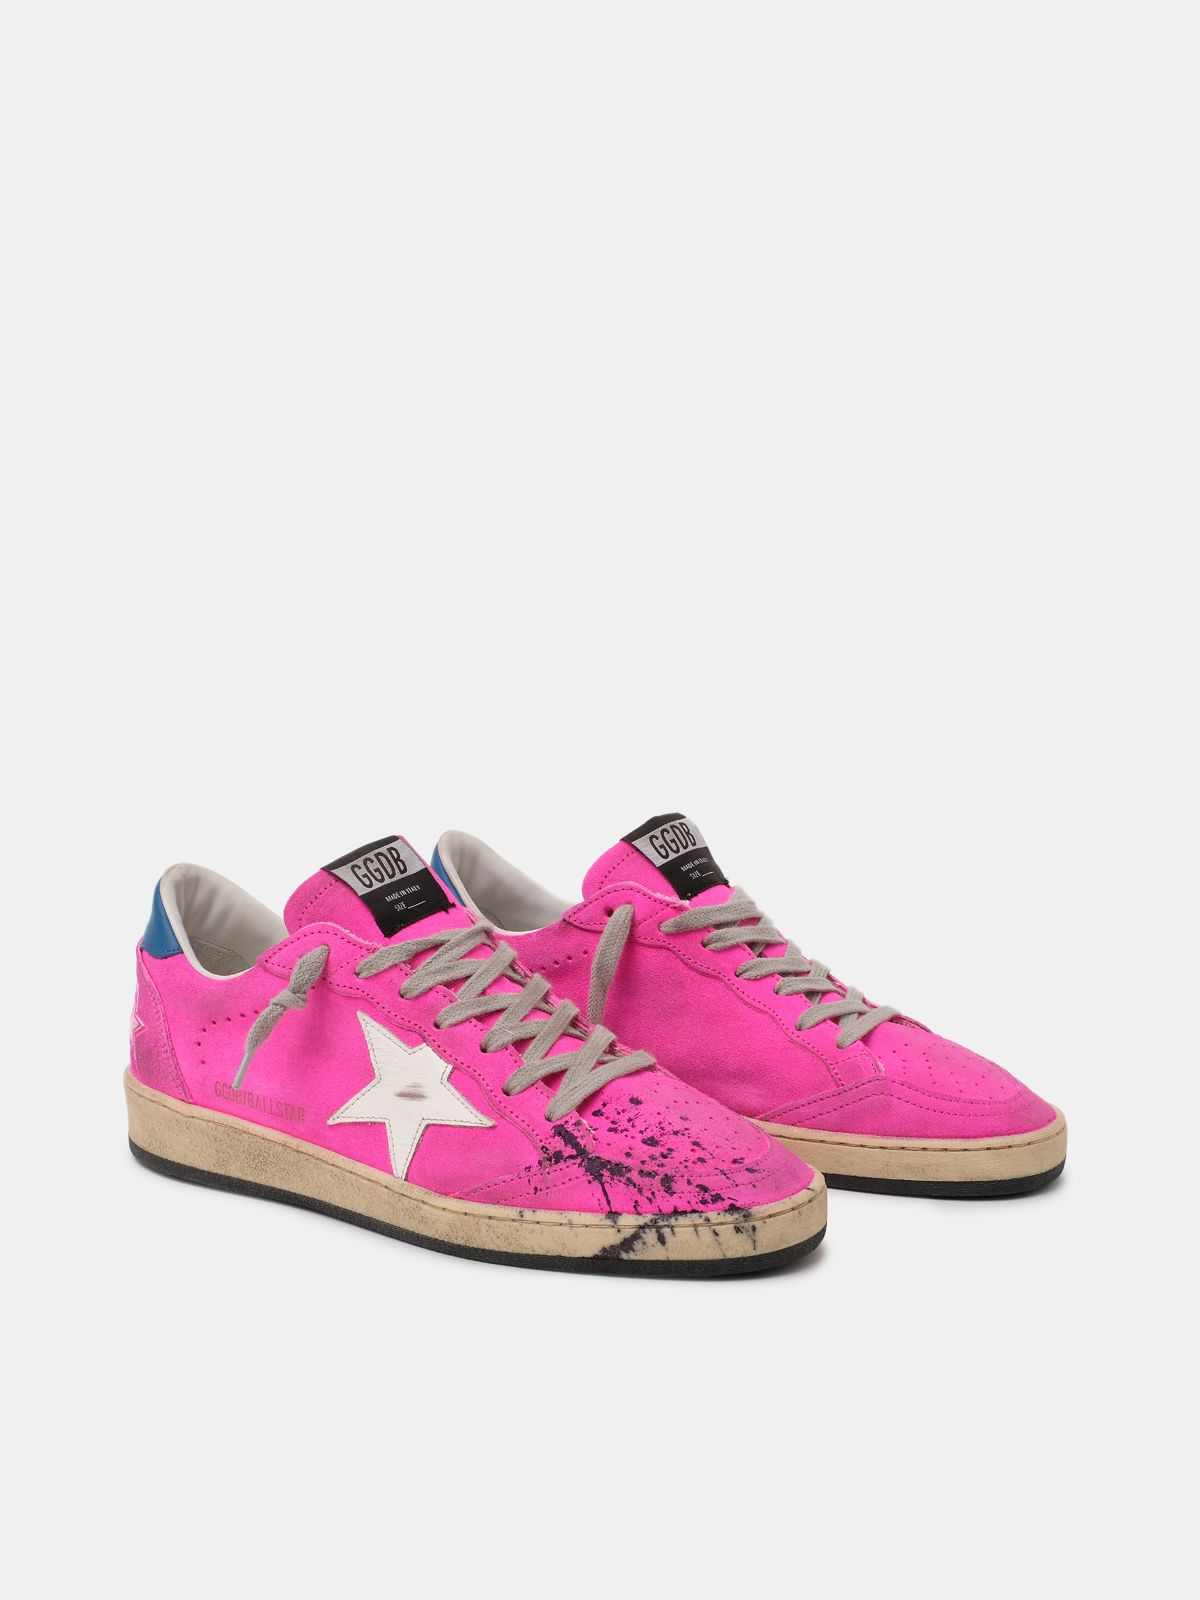 Golden Goose - Ball Star sneakers in fuchsia leather with splashes of colour in